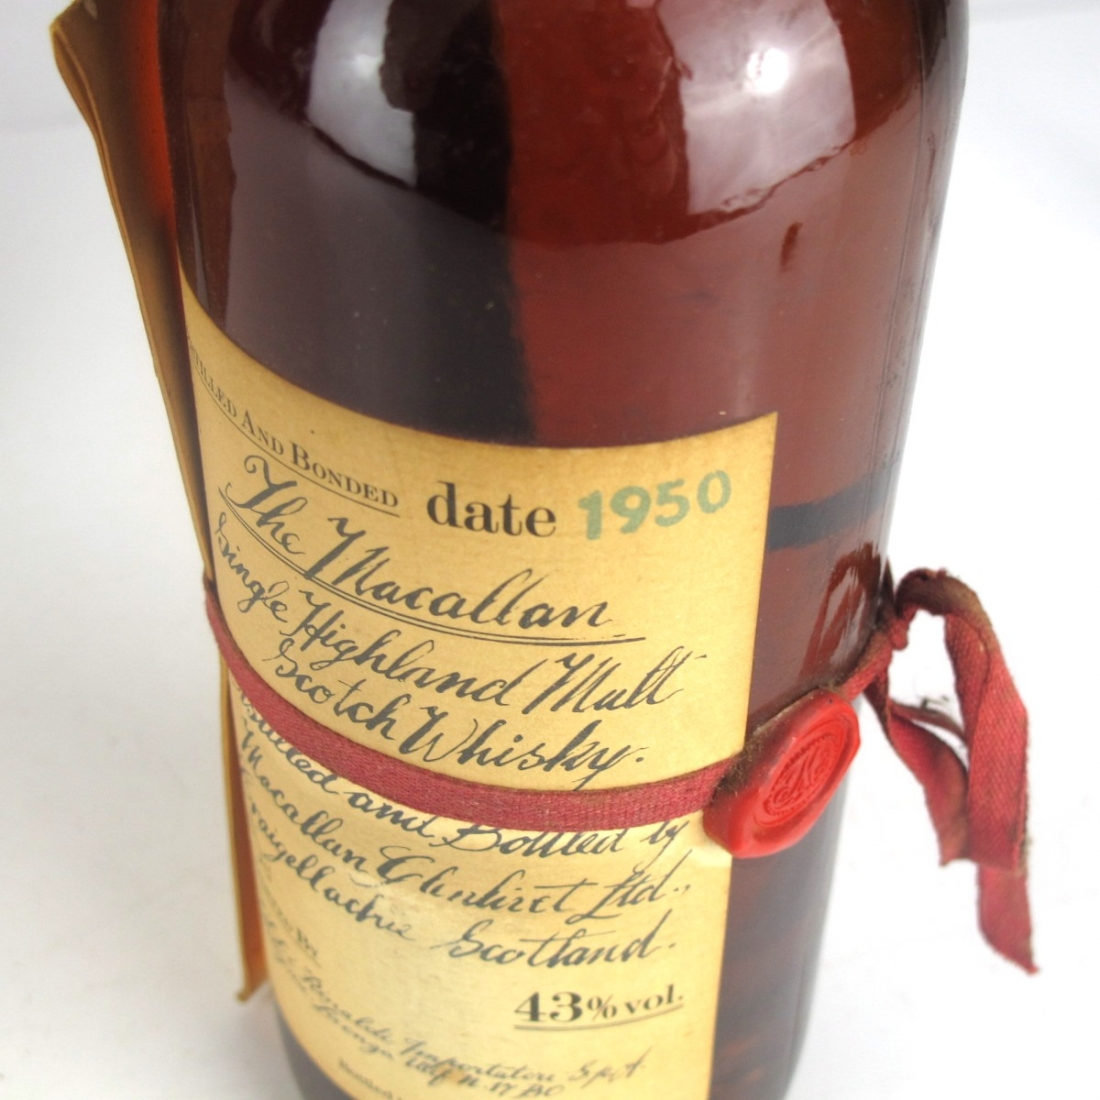 Macallan 1950 / Rinaldi Import